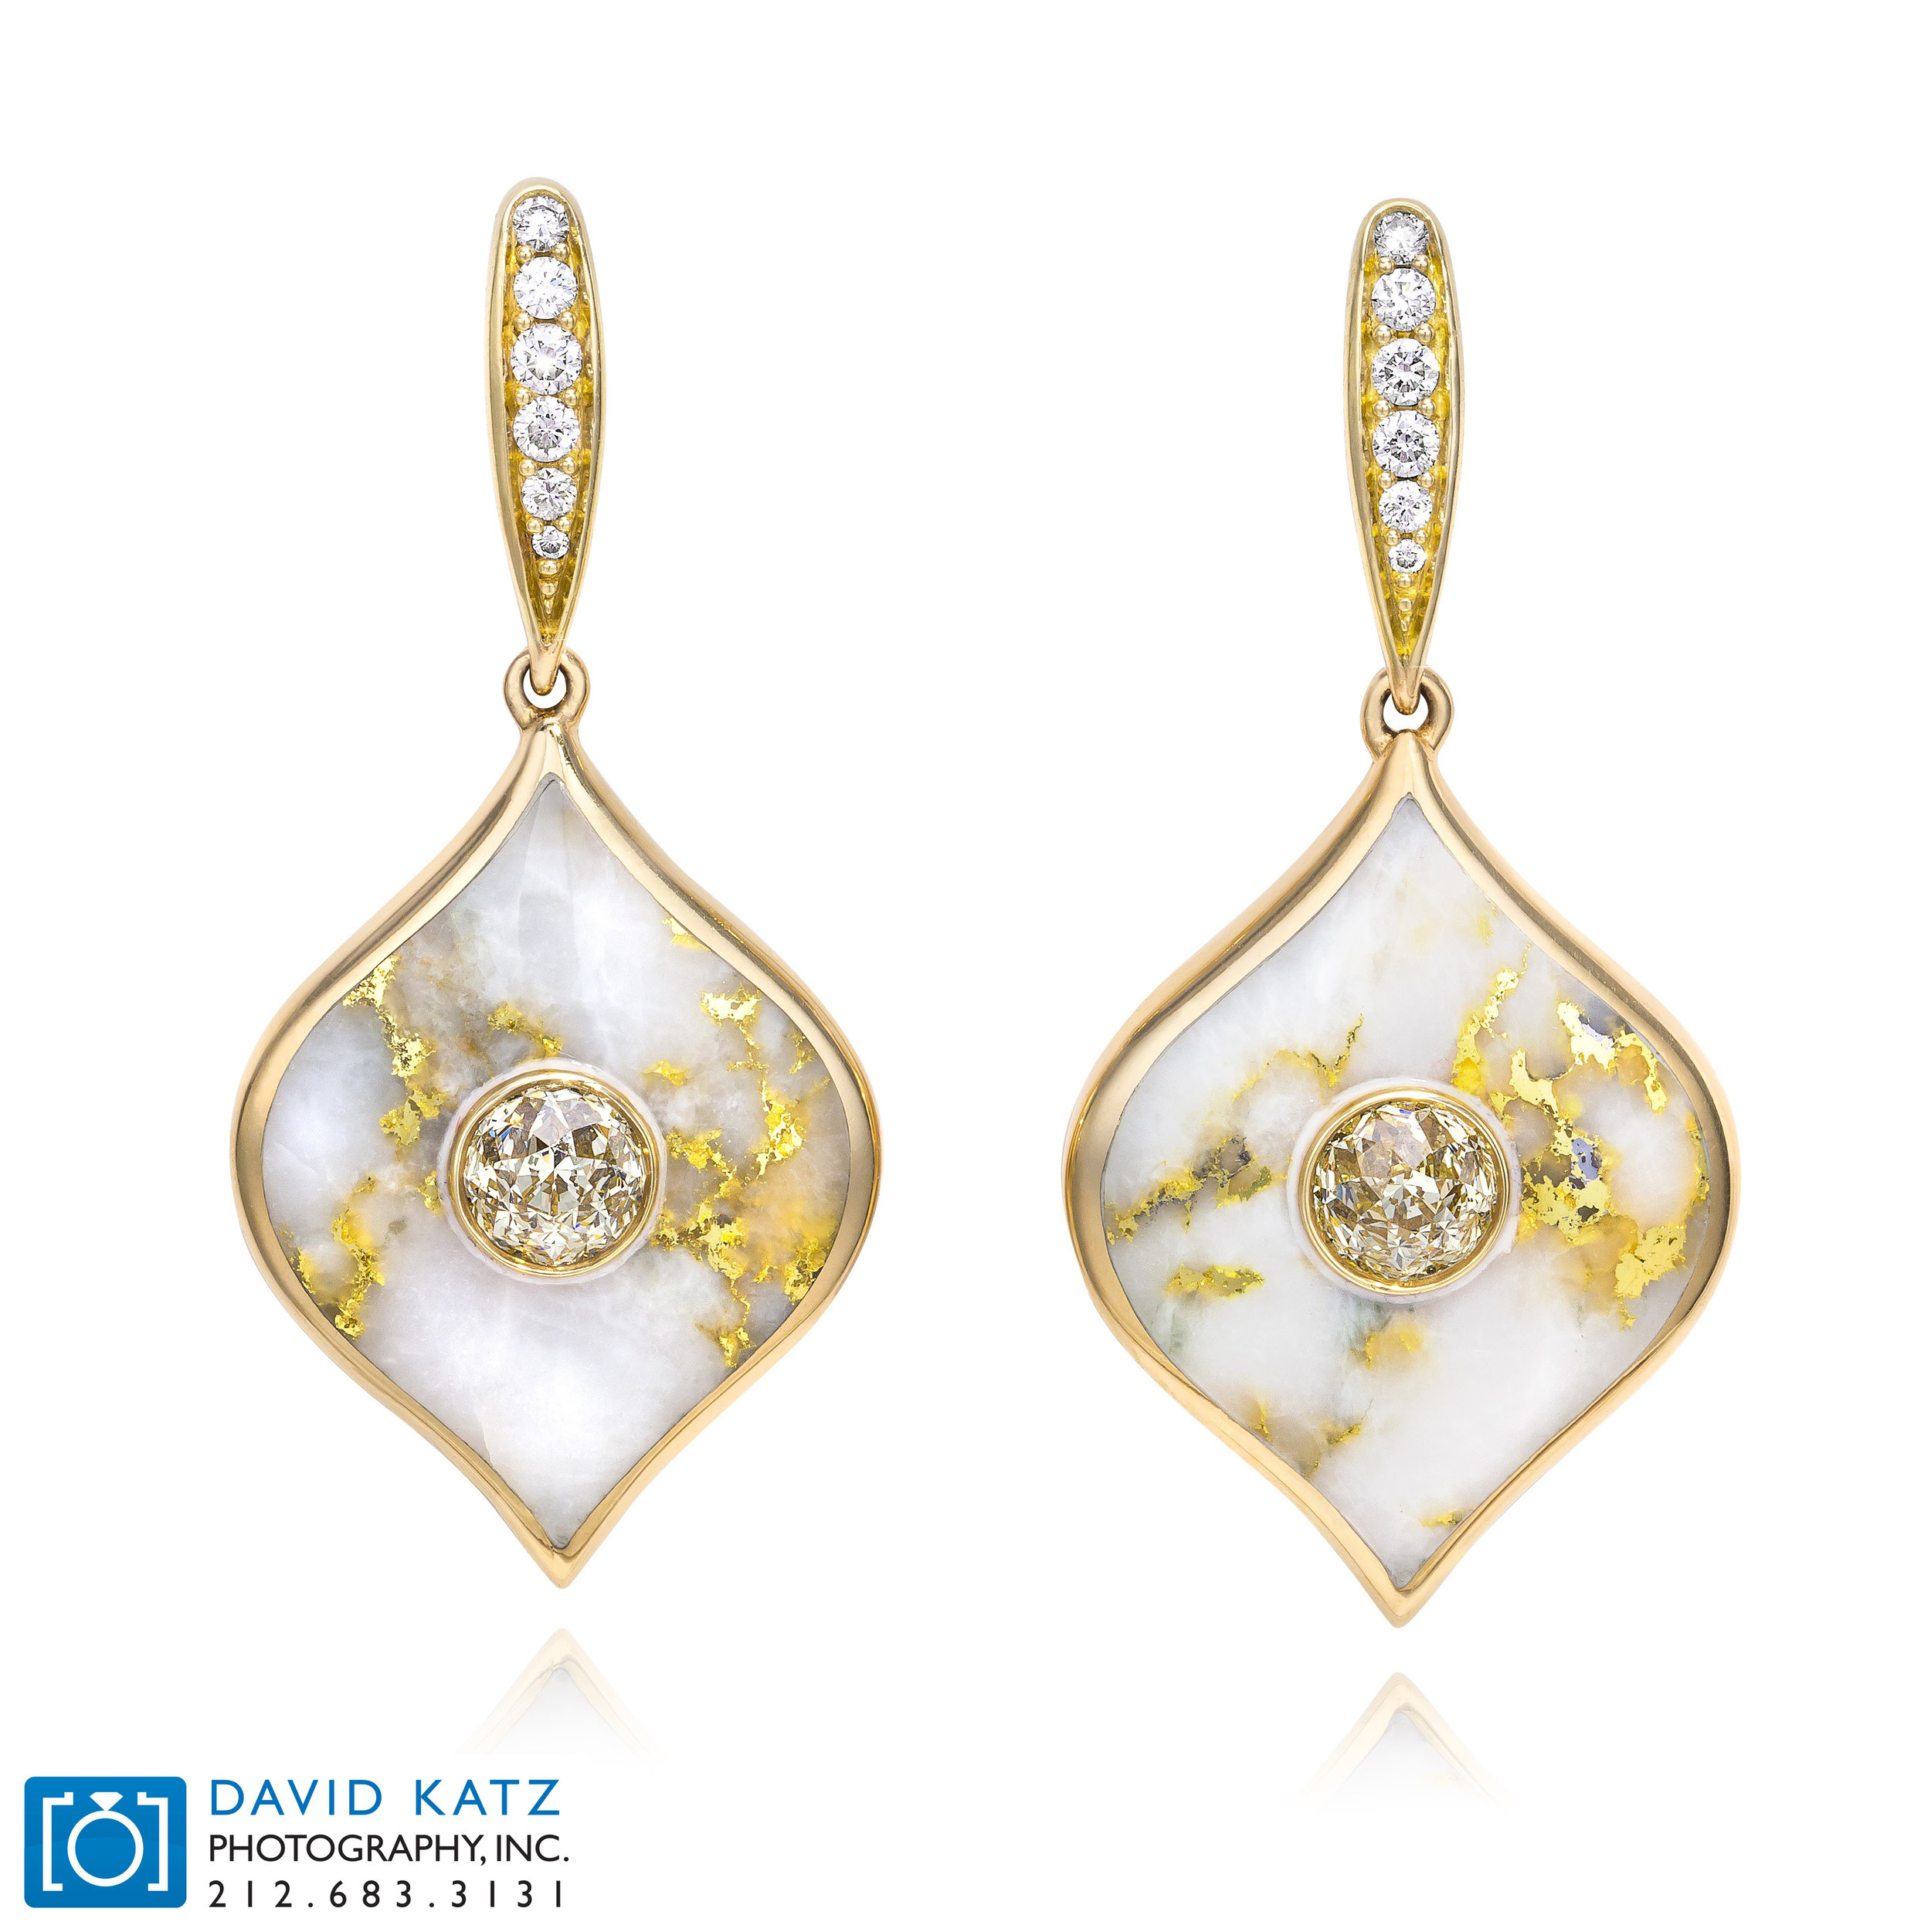 white opal diamond earrings_NEWLOGO.jpg